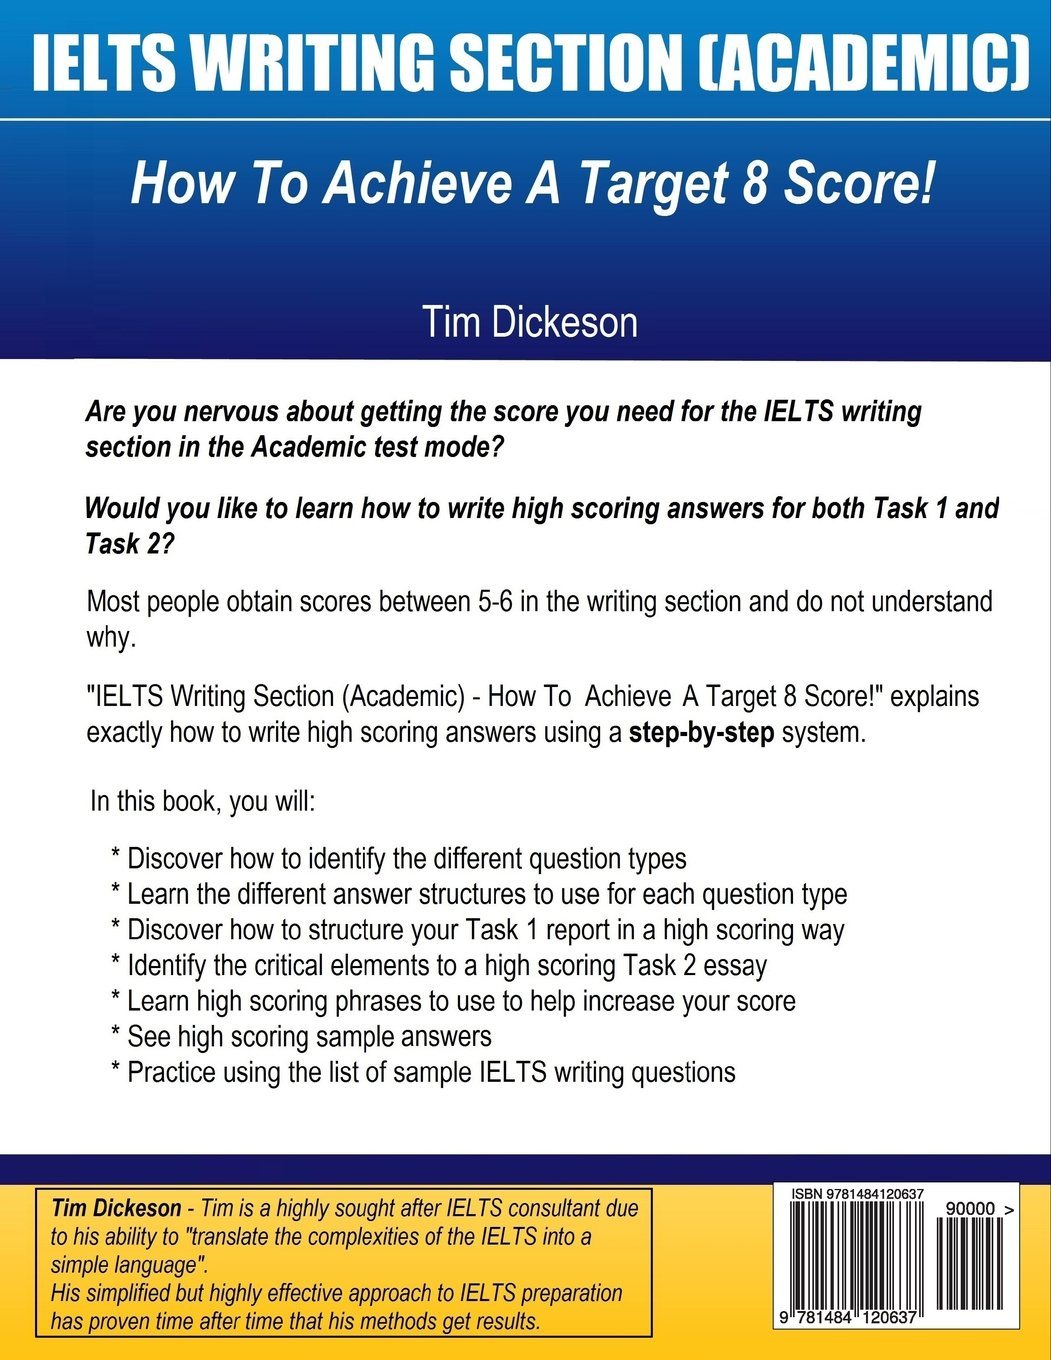 ielts writing section academic how to achieve a target score ielts writing section academic how to achieve a target 8 score amazon co uk mr tim dickeson books